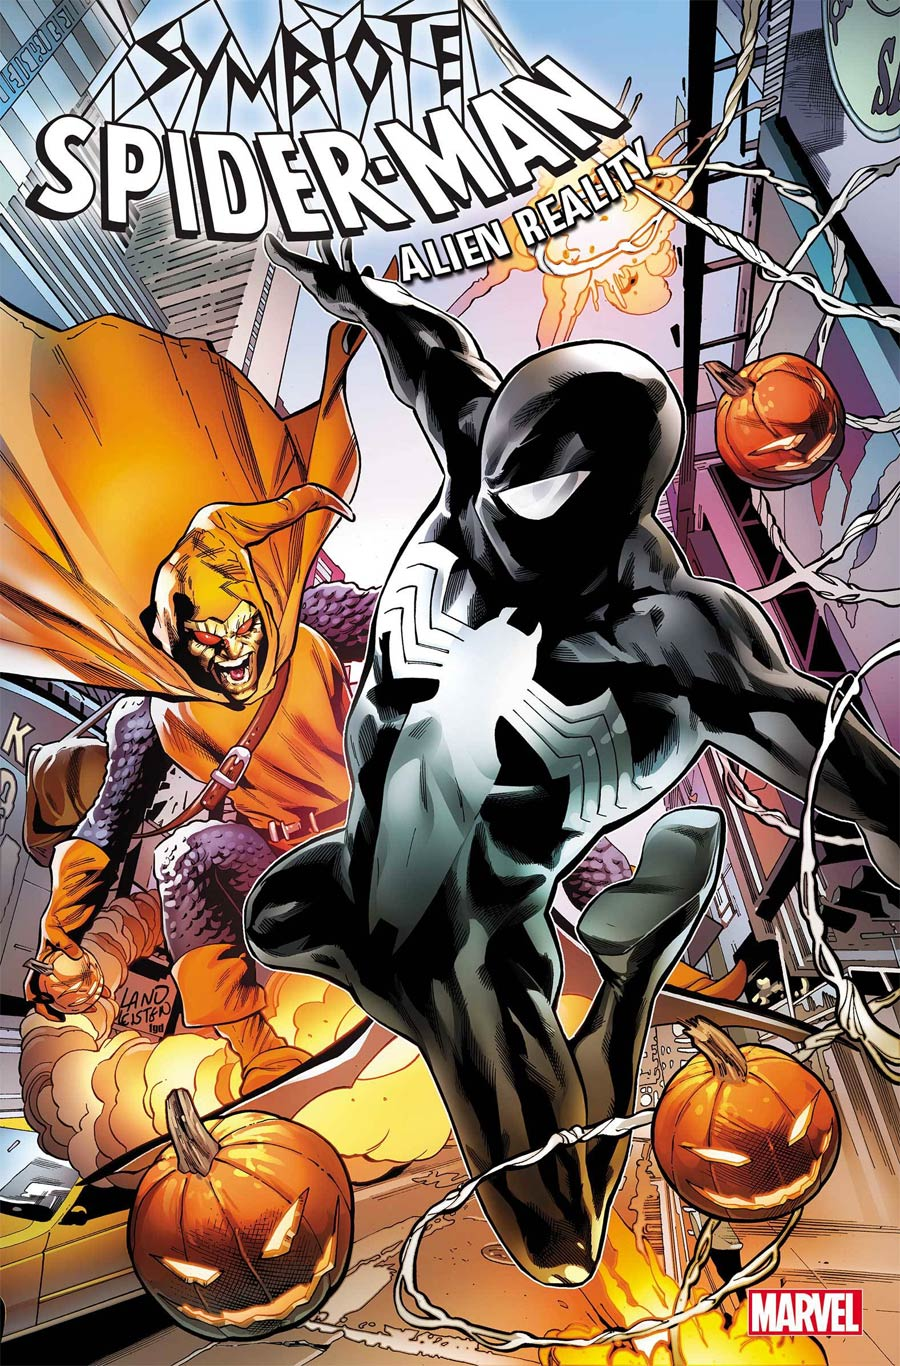 Symbiote Spider-Man Alien Reality #1 By Greg Land Poster